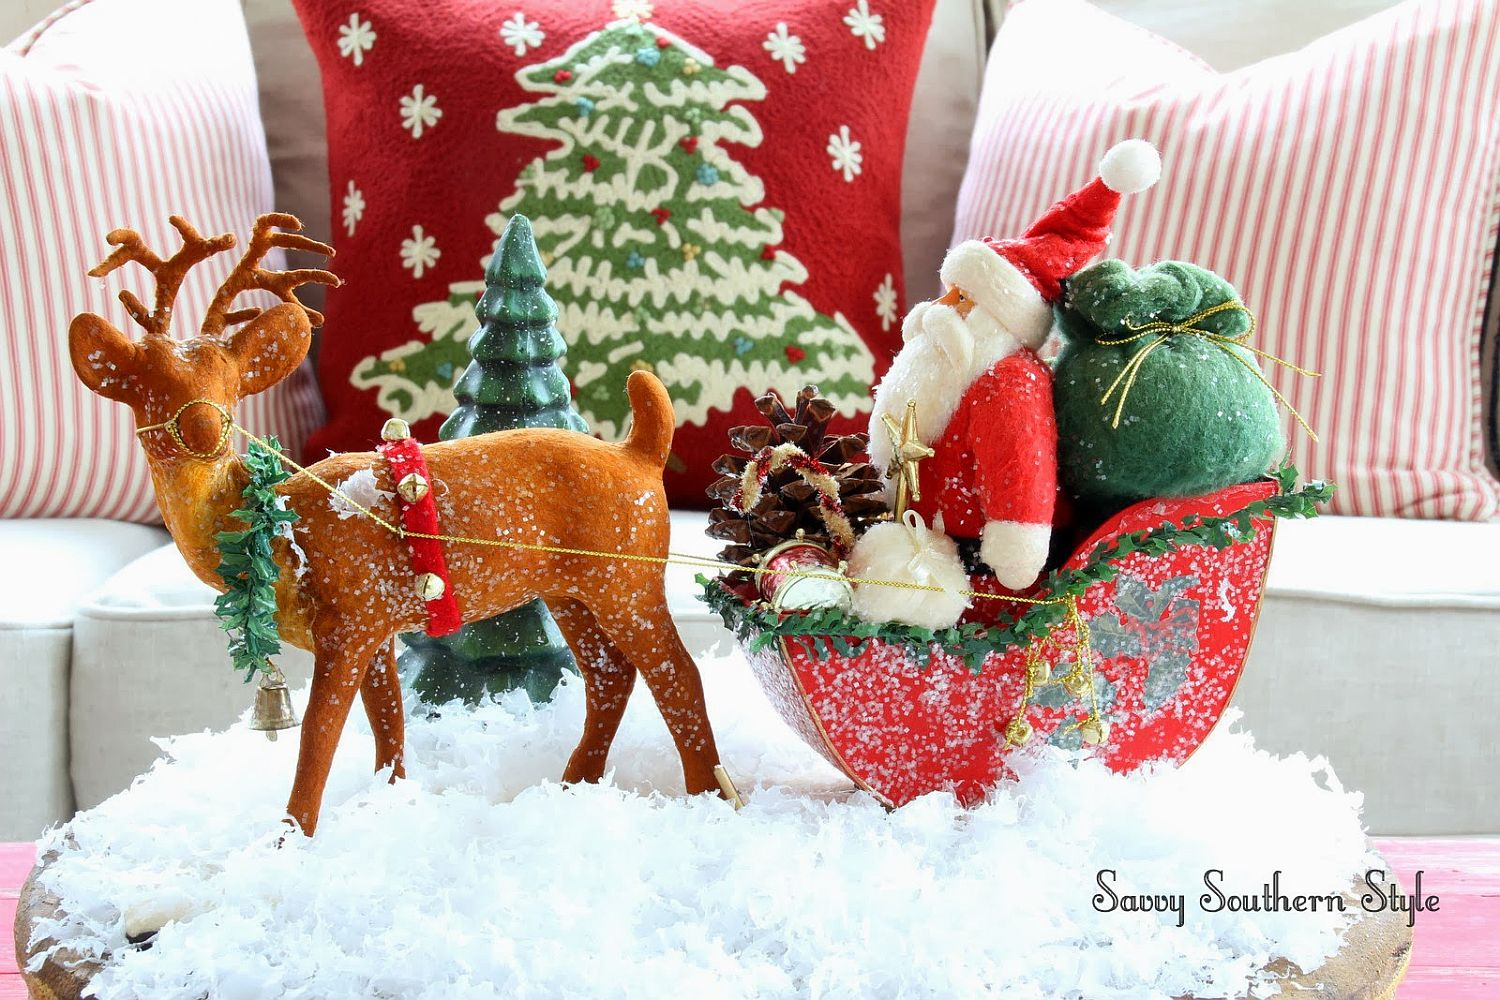 Santa and his sleigh make a fabulous coffee table centerpiece that steals the spotlight